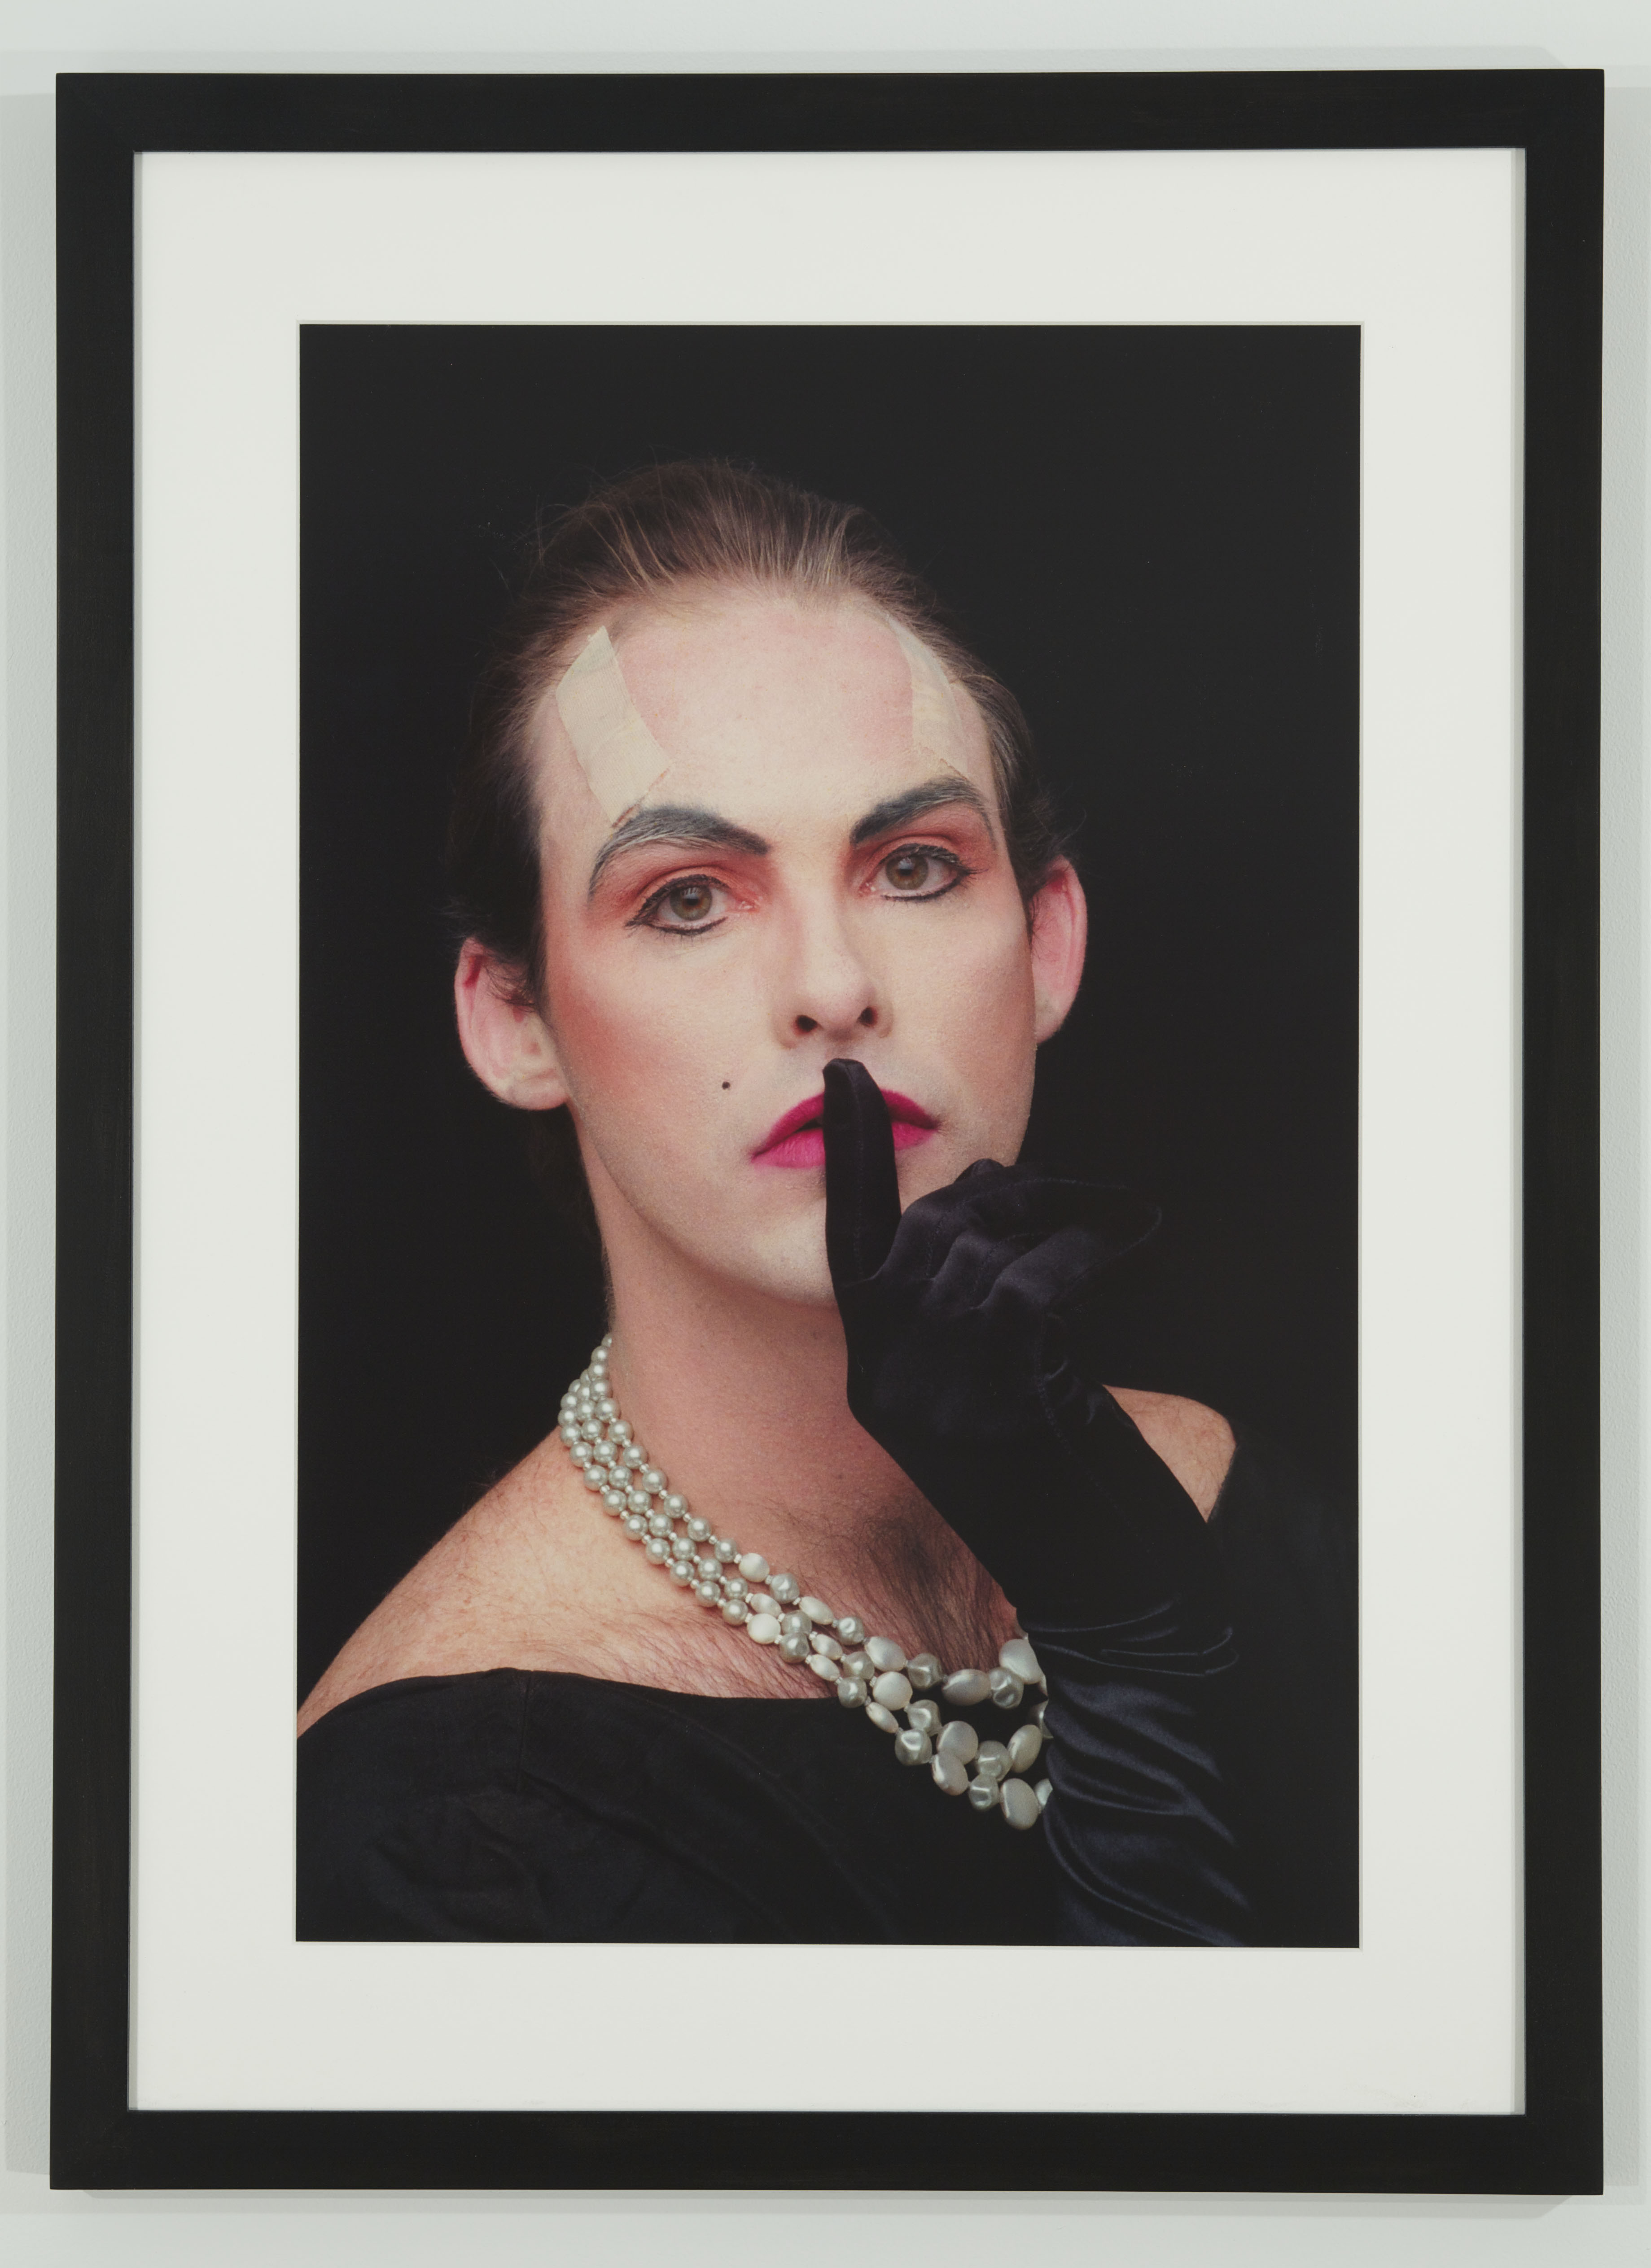 Hunter Reynolds, Shhh (from Patina du Prey Drag Pose Series), 1990/2012. Photo by Michael Wakefeld. Courtesy the artist, P.P.O.W and Hales Gallery